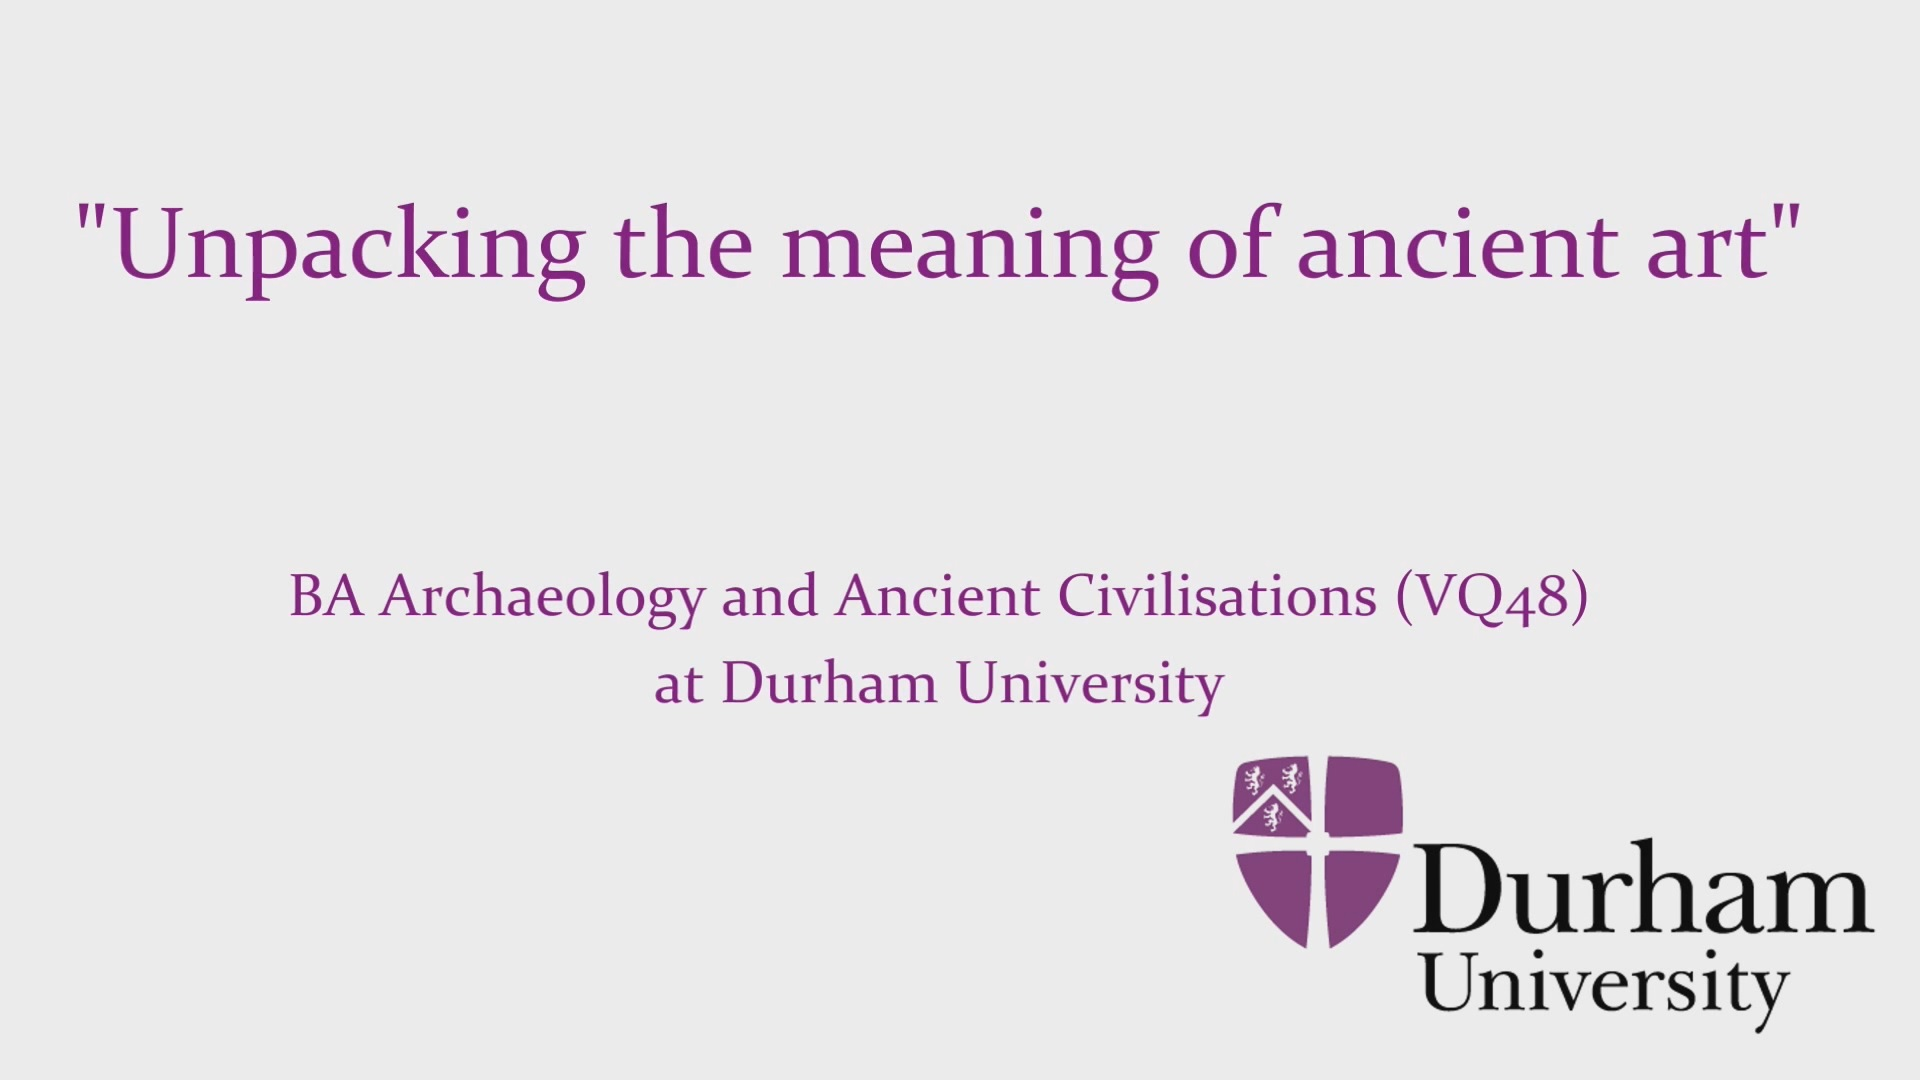 BA Archaeology and Ancient Civilisations at Durham University